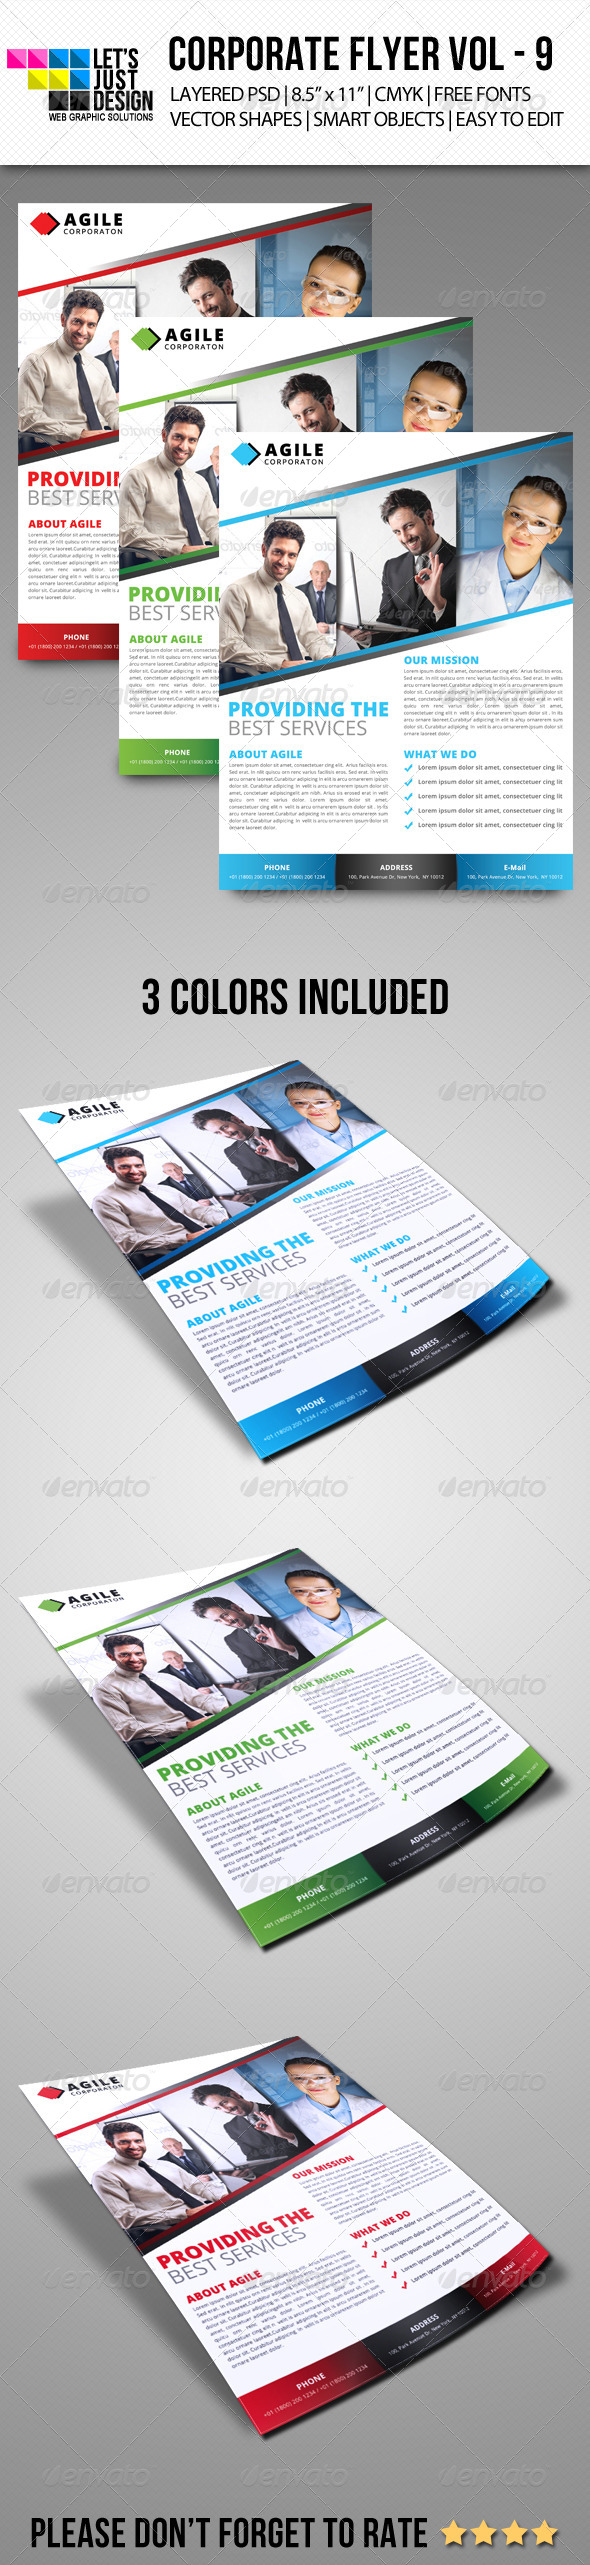 GraphicRiver Corporate Flyer Template Vol 9 6942721